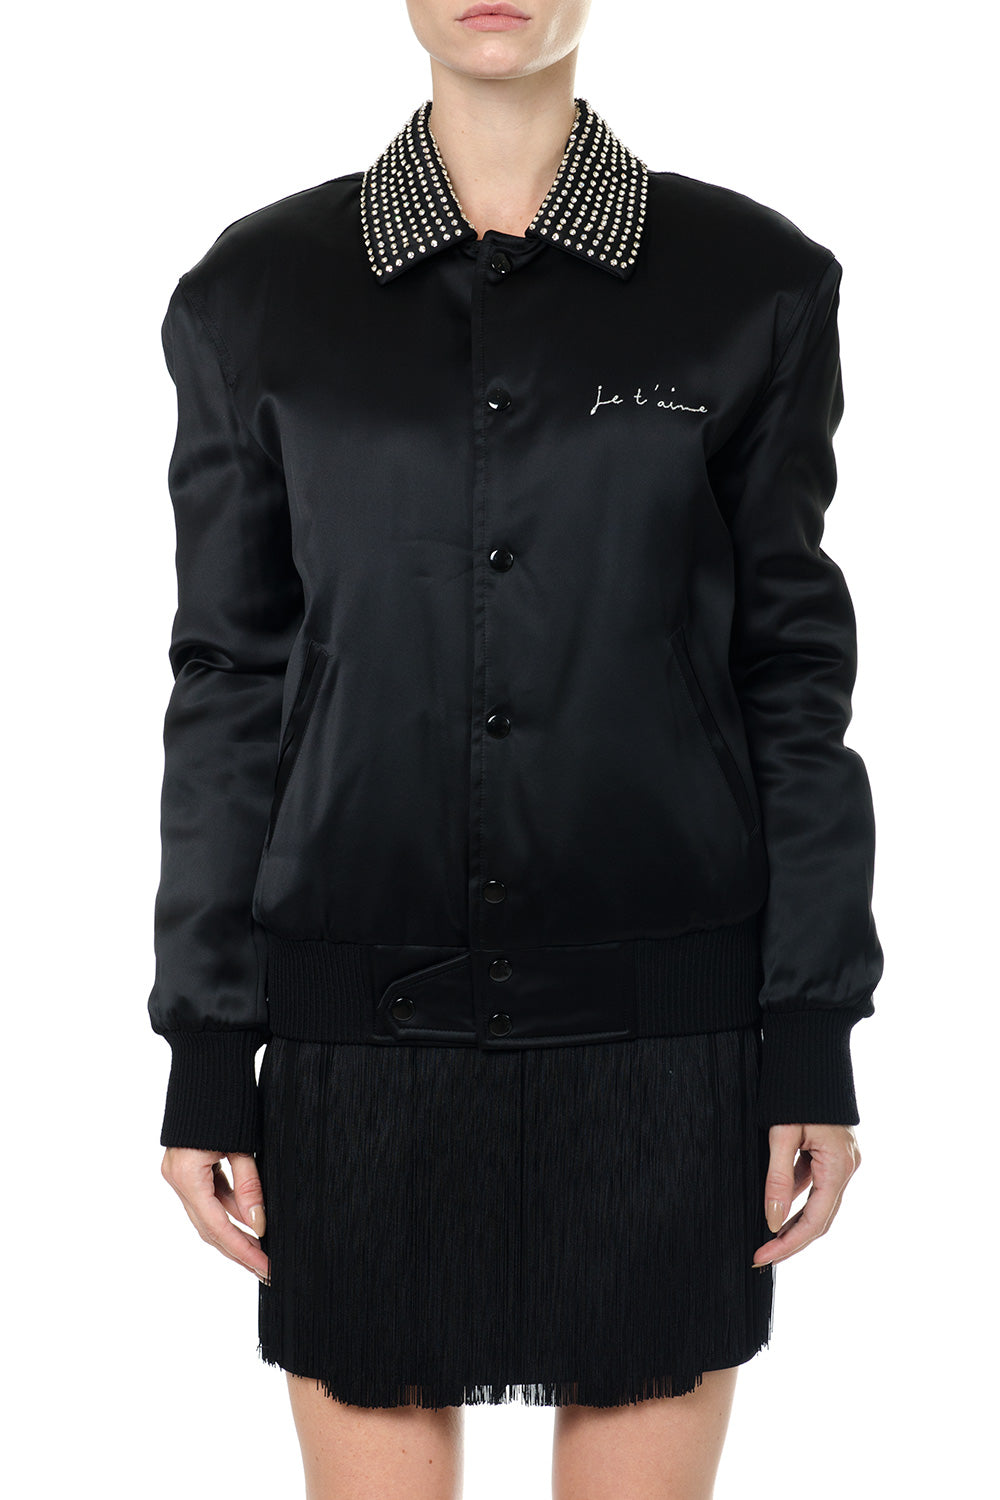 SAINT LAURENT JE T'AIME EMBELLISHED COLLAR BOMBER JACKET